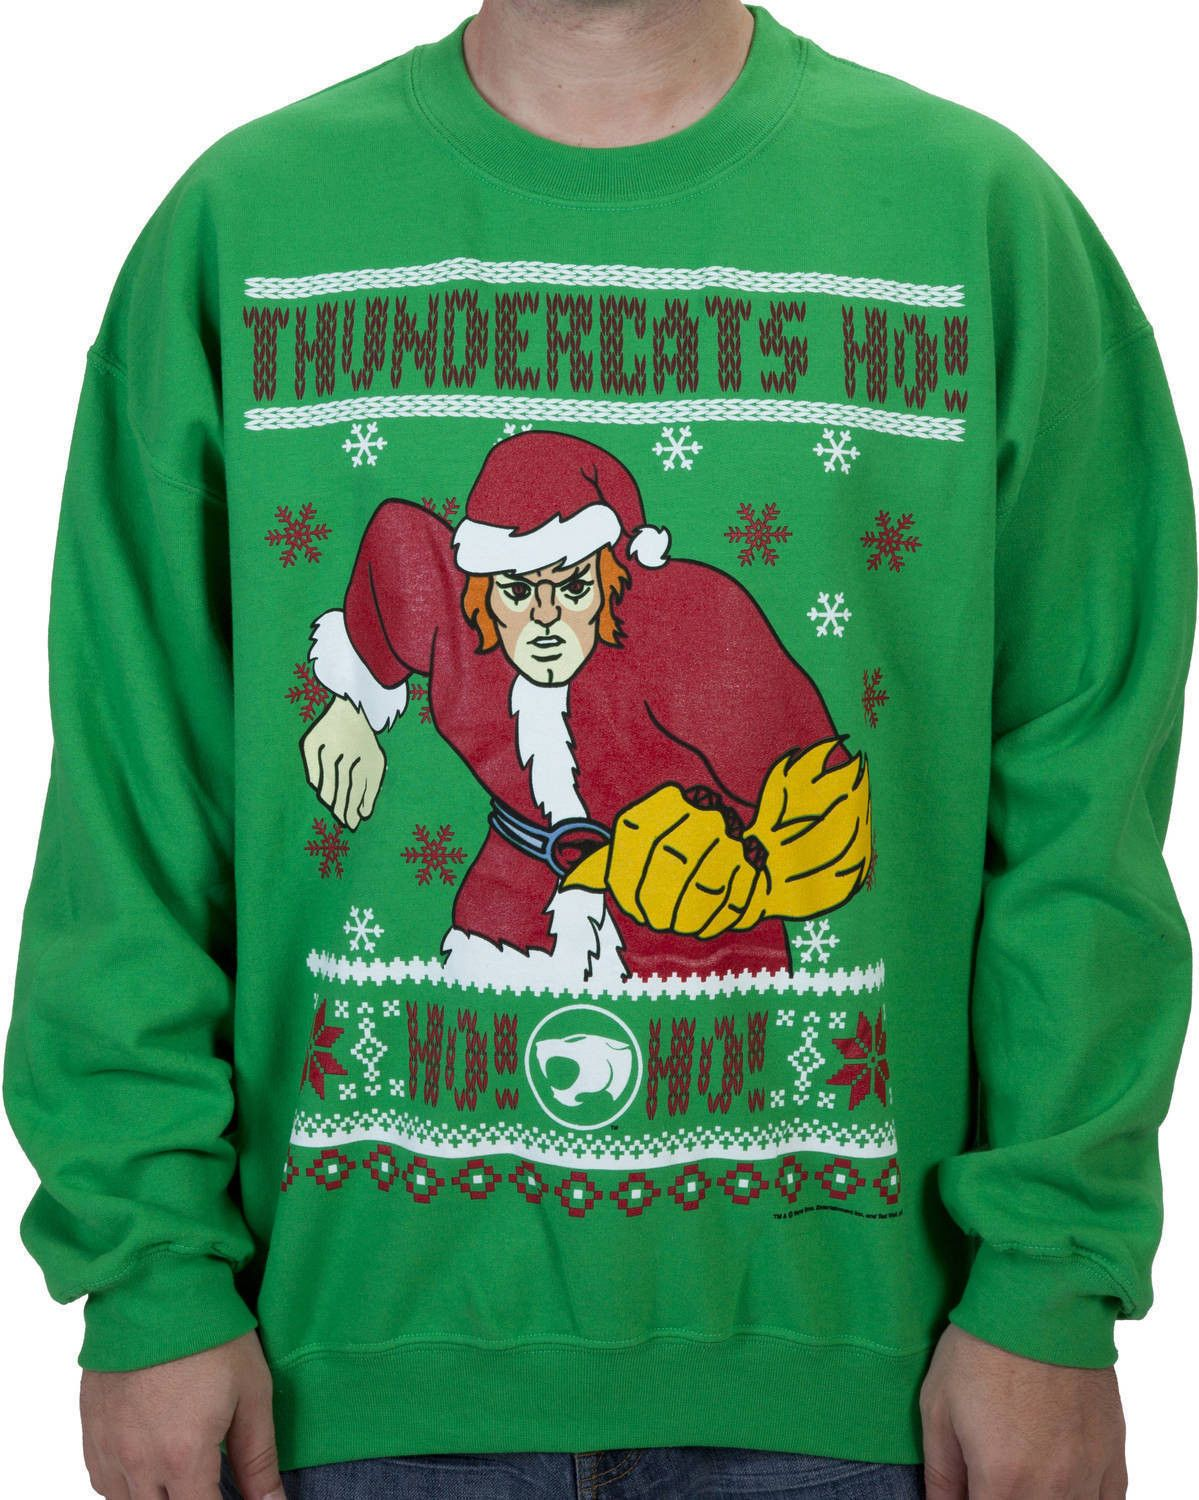 ThunderCats Ugly Christmas Sweater | Ugly Christmas Sweaters ...